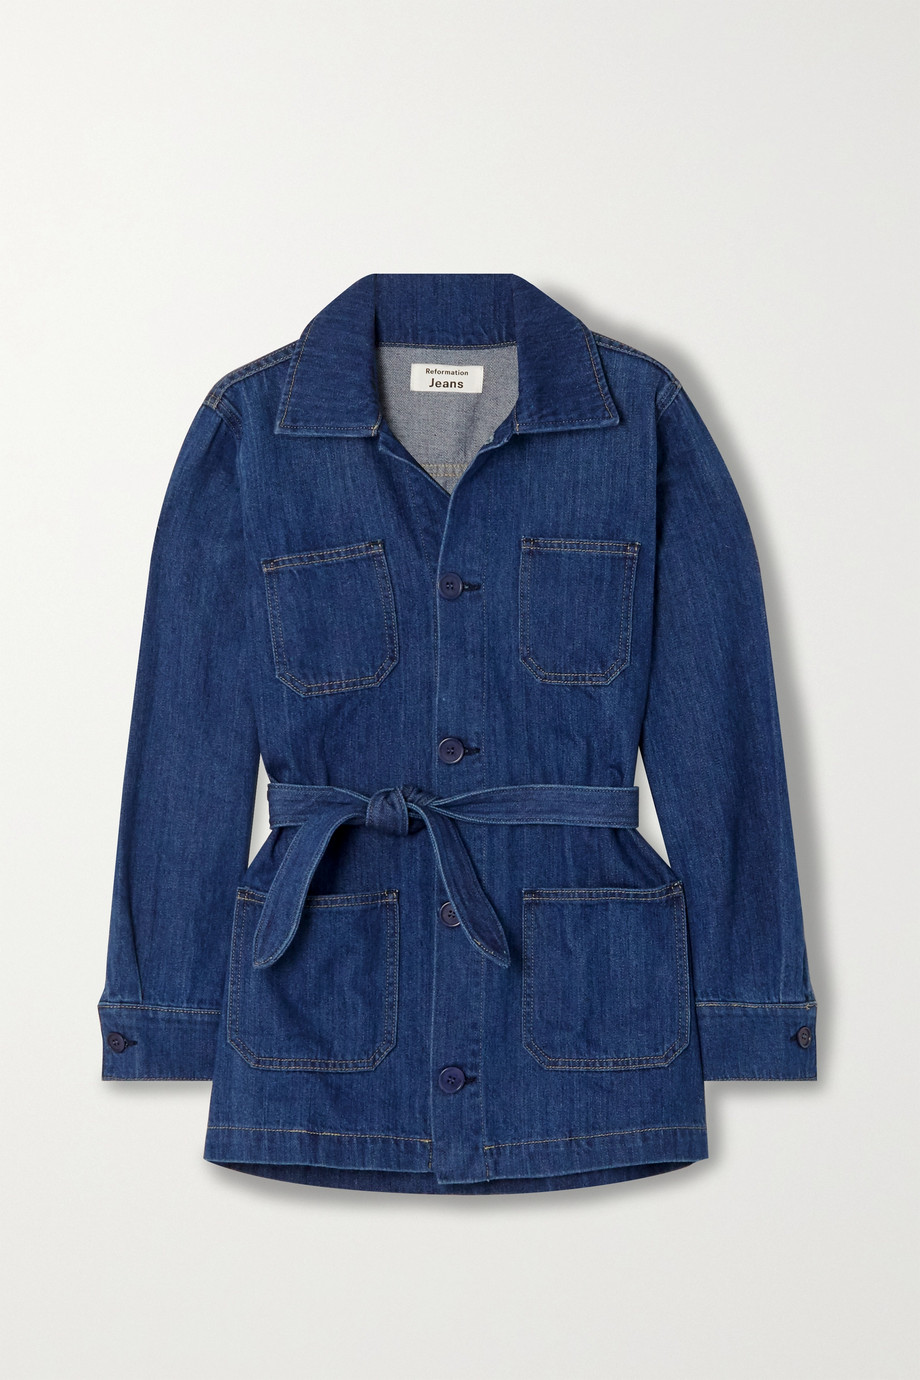 Reformation Dylan belted organic denim jacket